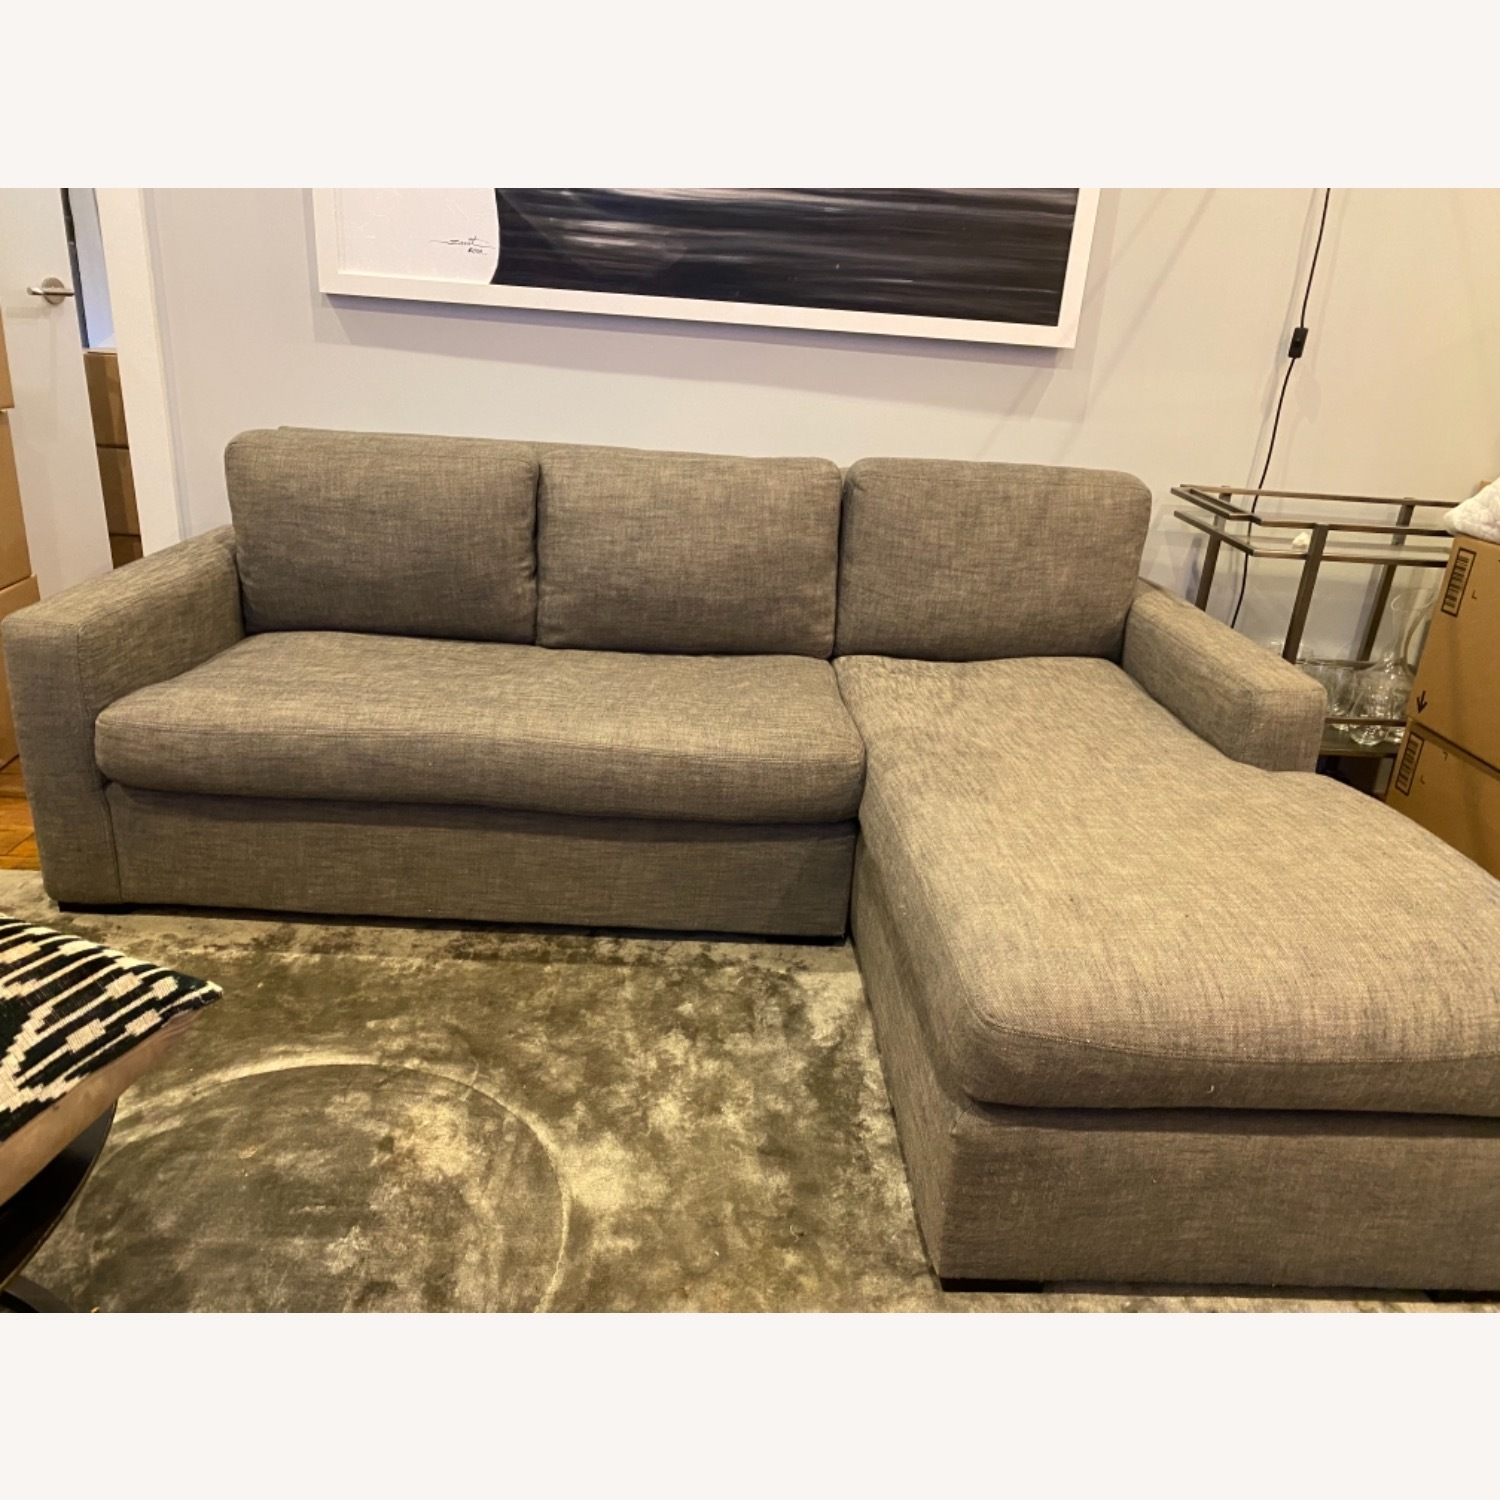 Restoration Hardware Maxwell Right Arm Chaise - image-1